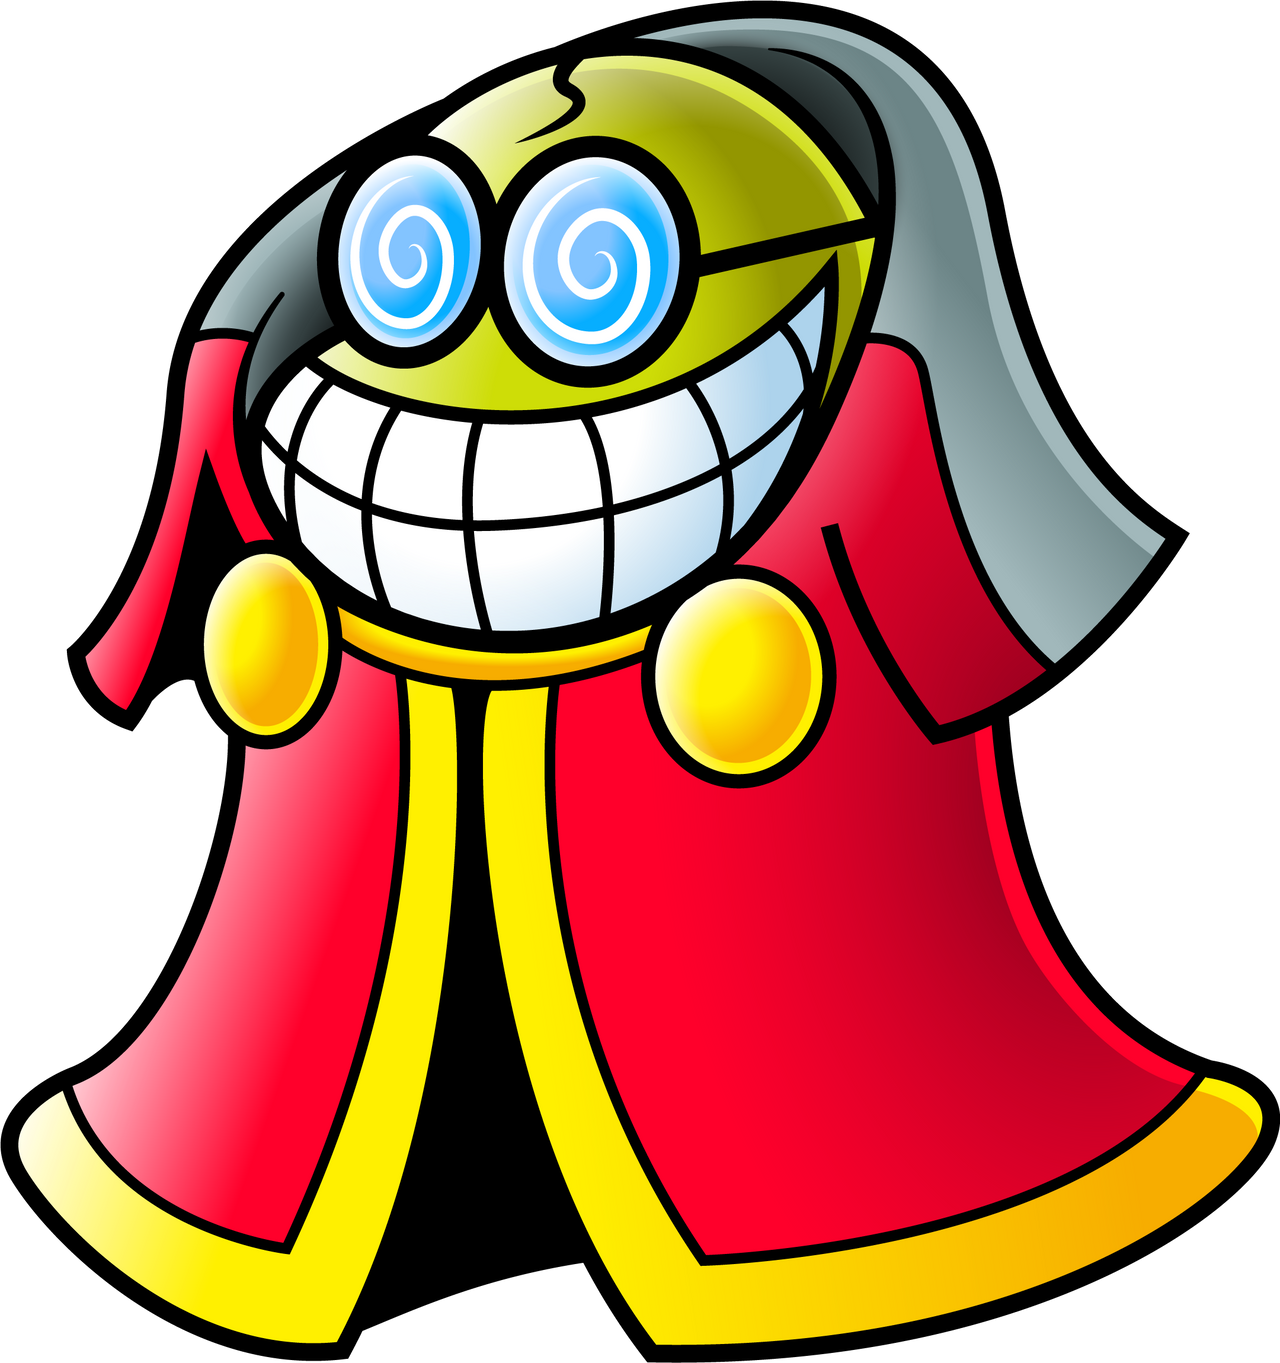 Top 10 Mario Characters - Fawful